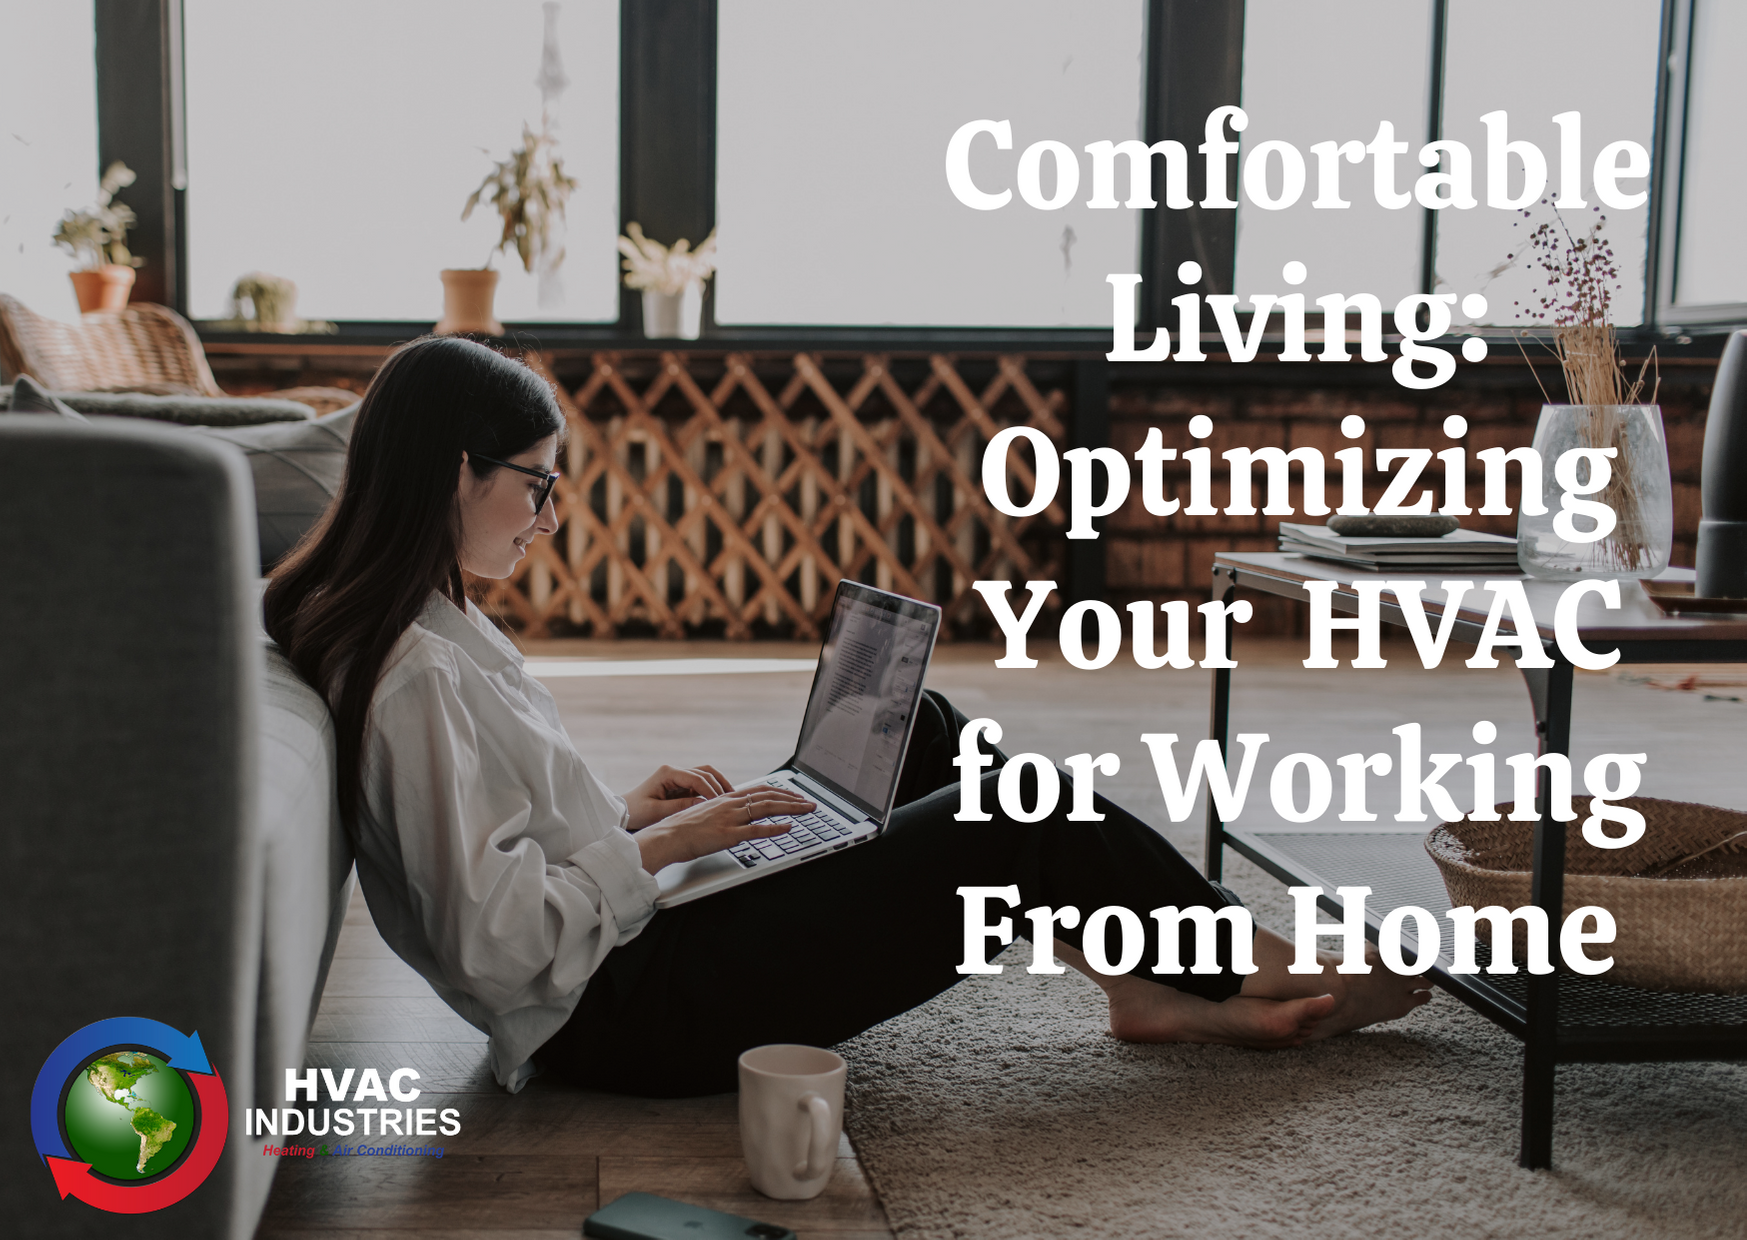 Optimizing Your HVAC for Working From Home